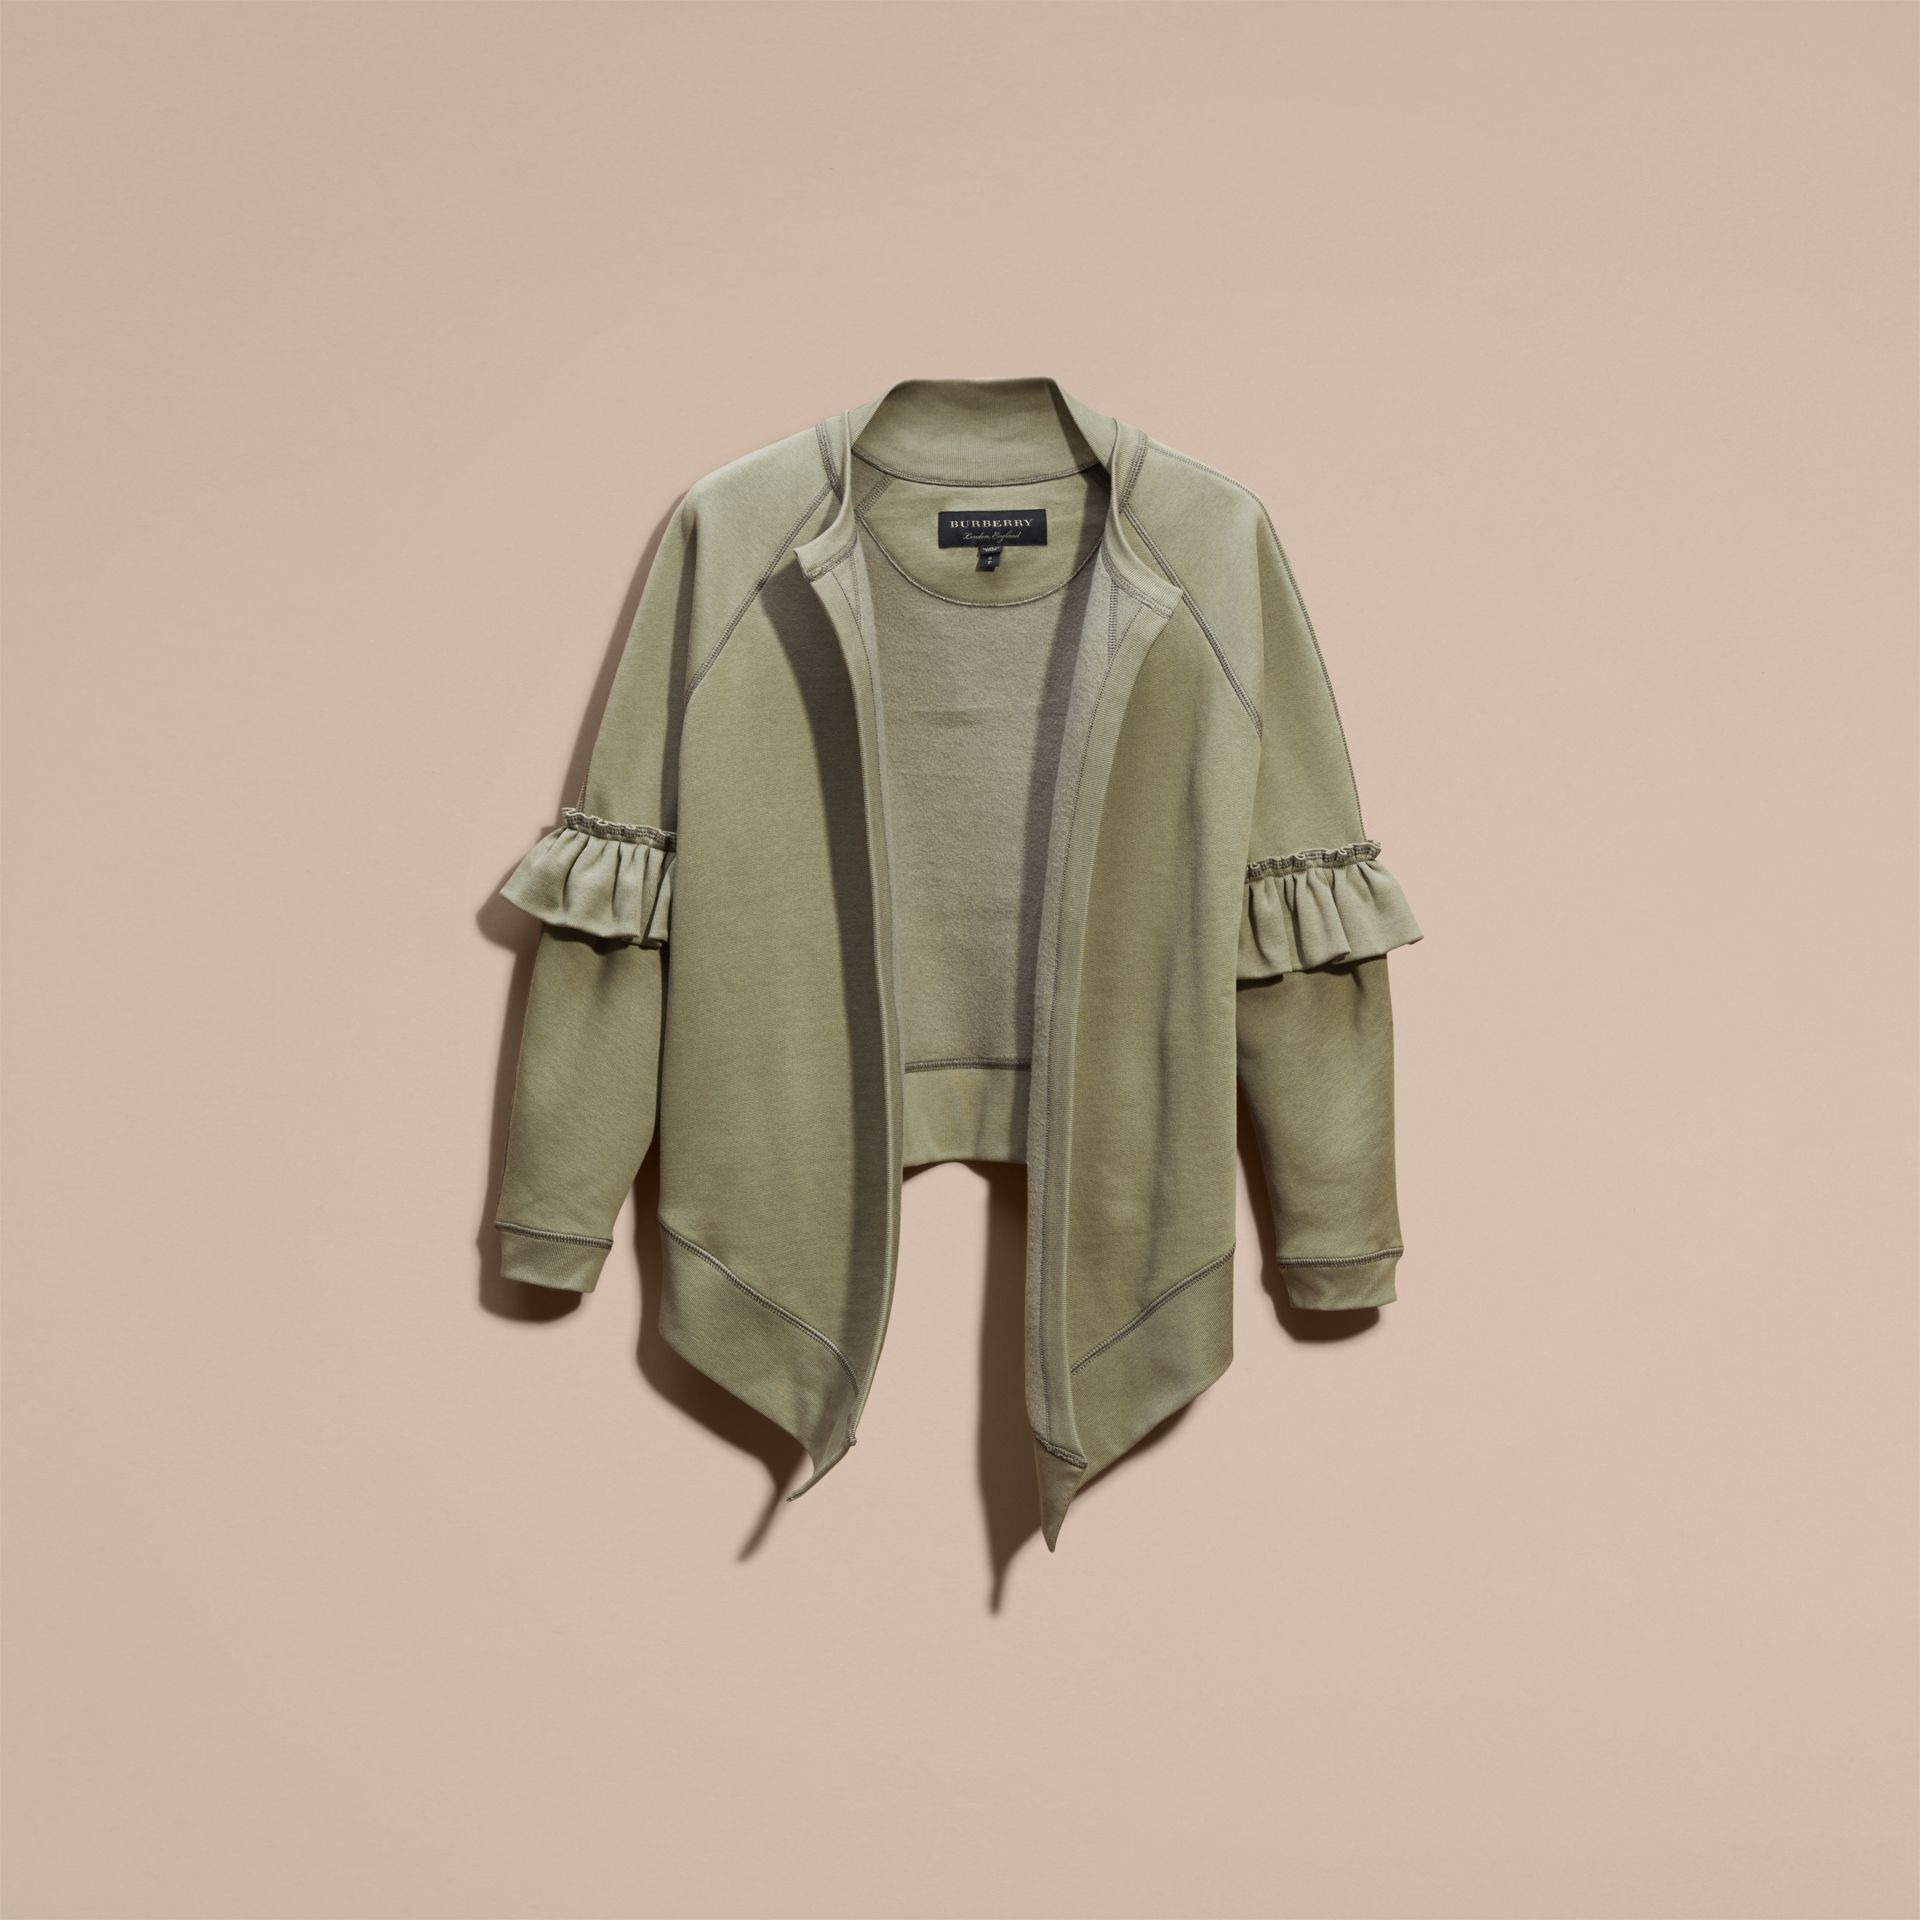 Cotton Blend Sweatshirt Jacket with Ruffle Sleeves in Khaki - gallery image 4